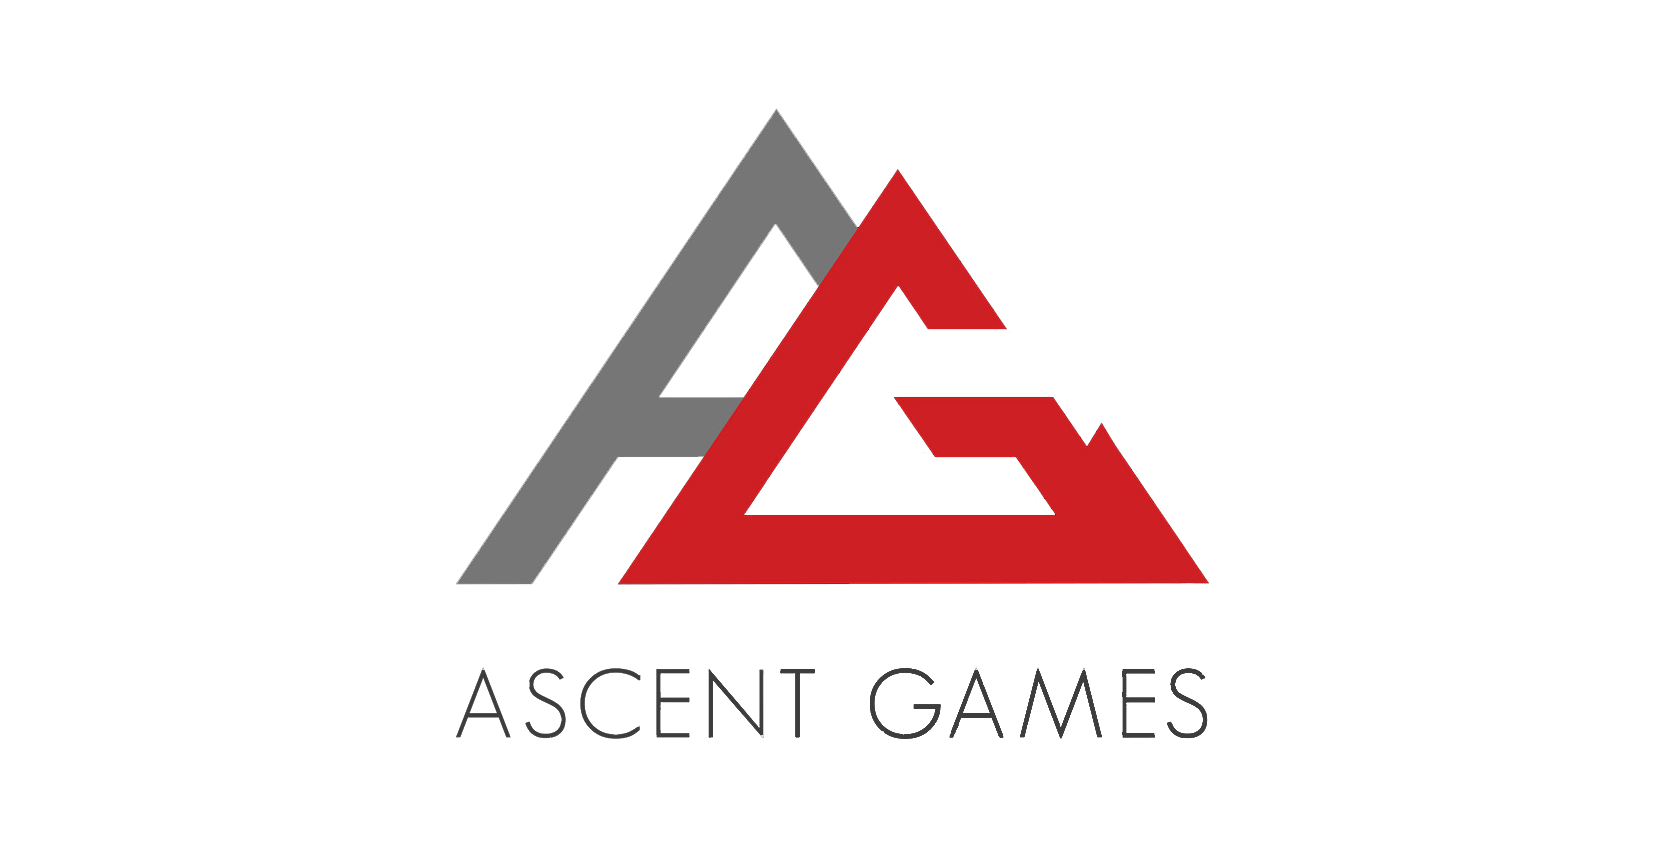 Ascent Games logo